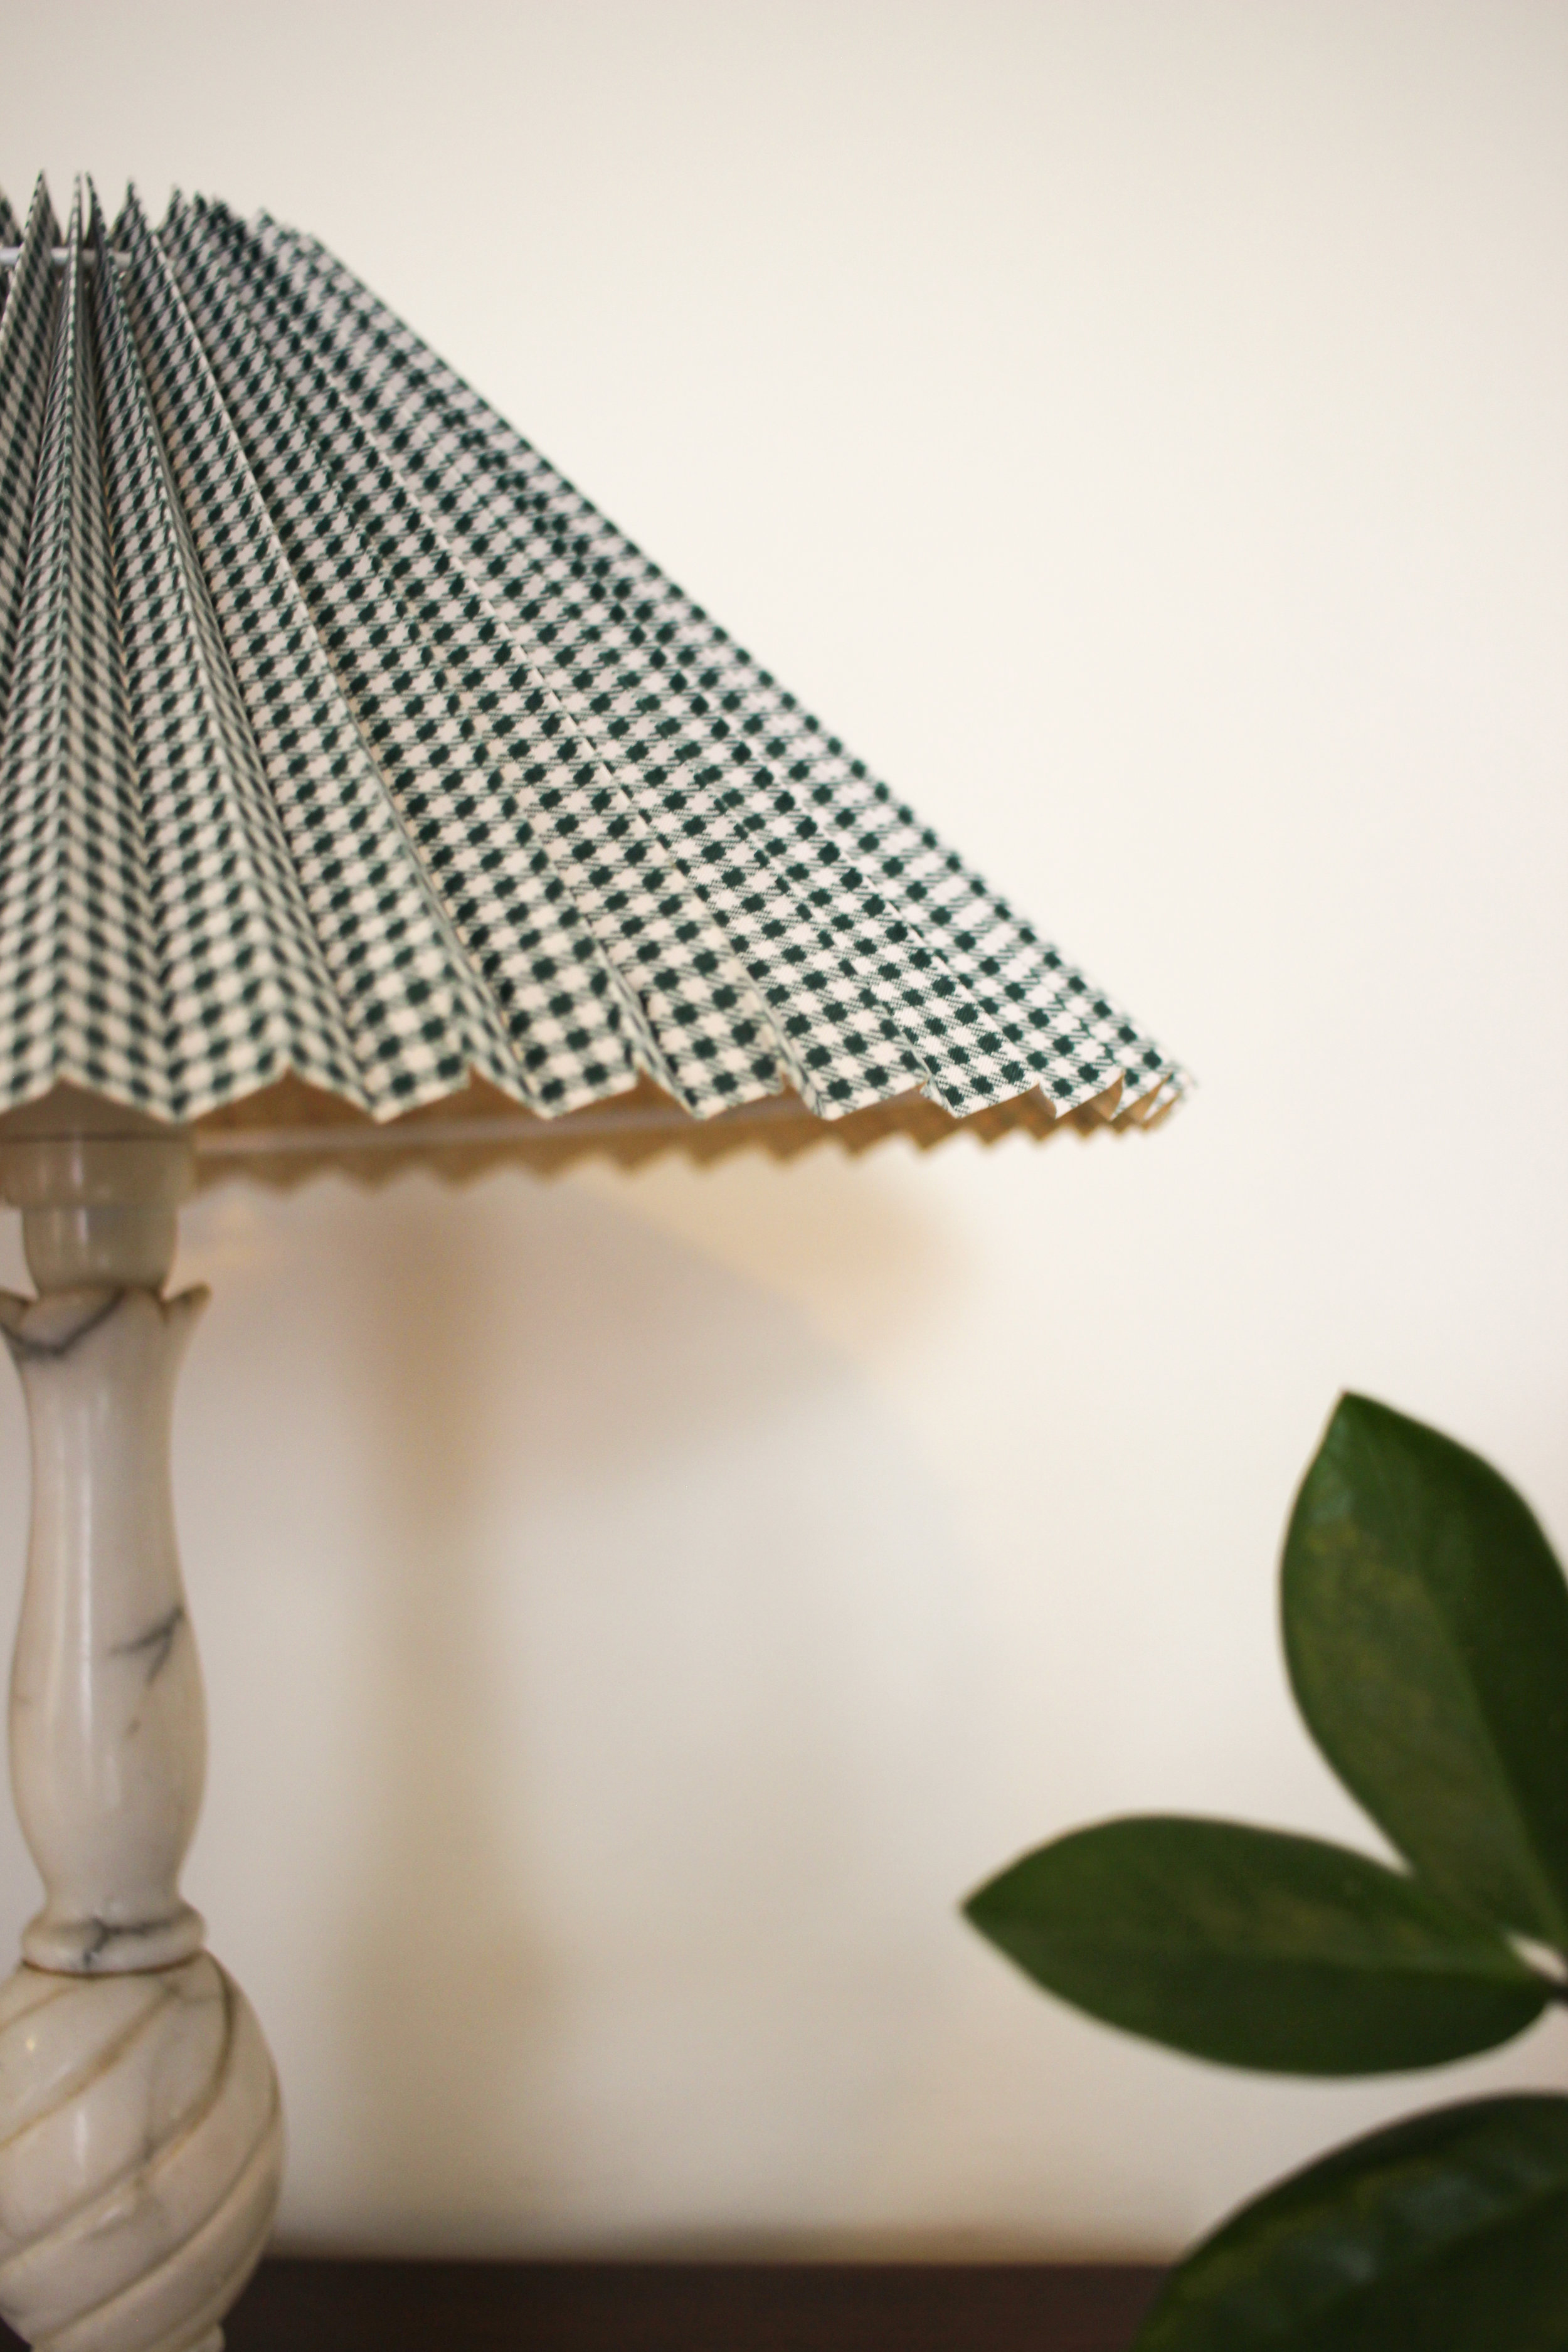 ANOTHER CLOSE-UP OF MY BELOVED GINGHAM LAMPSHADES